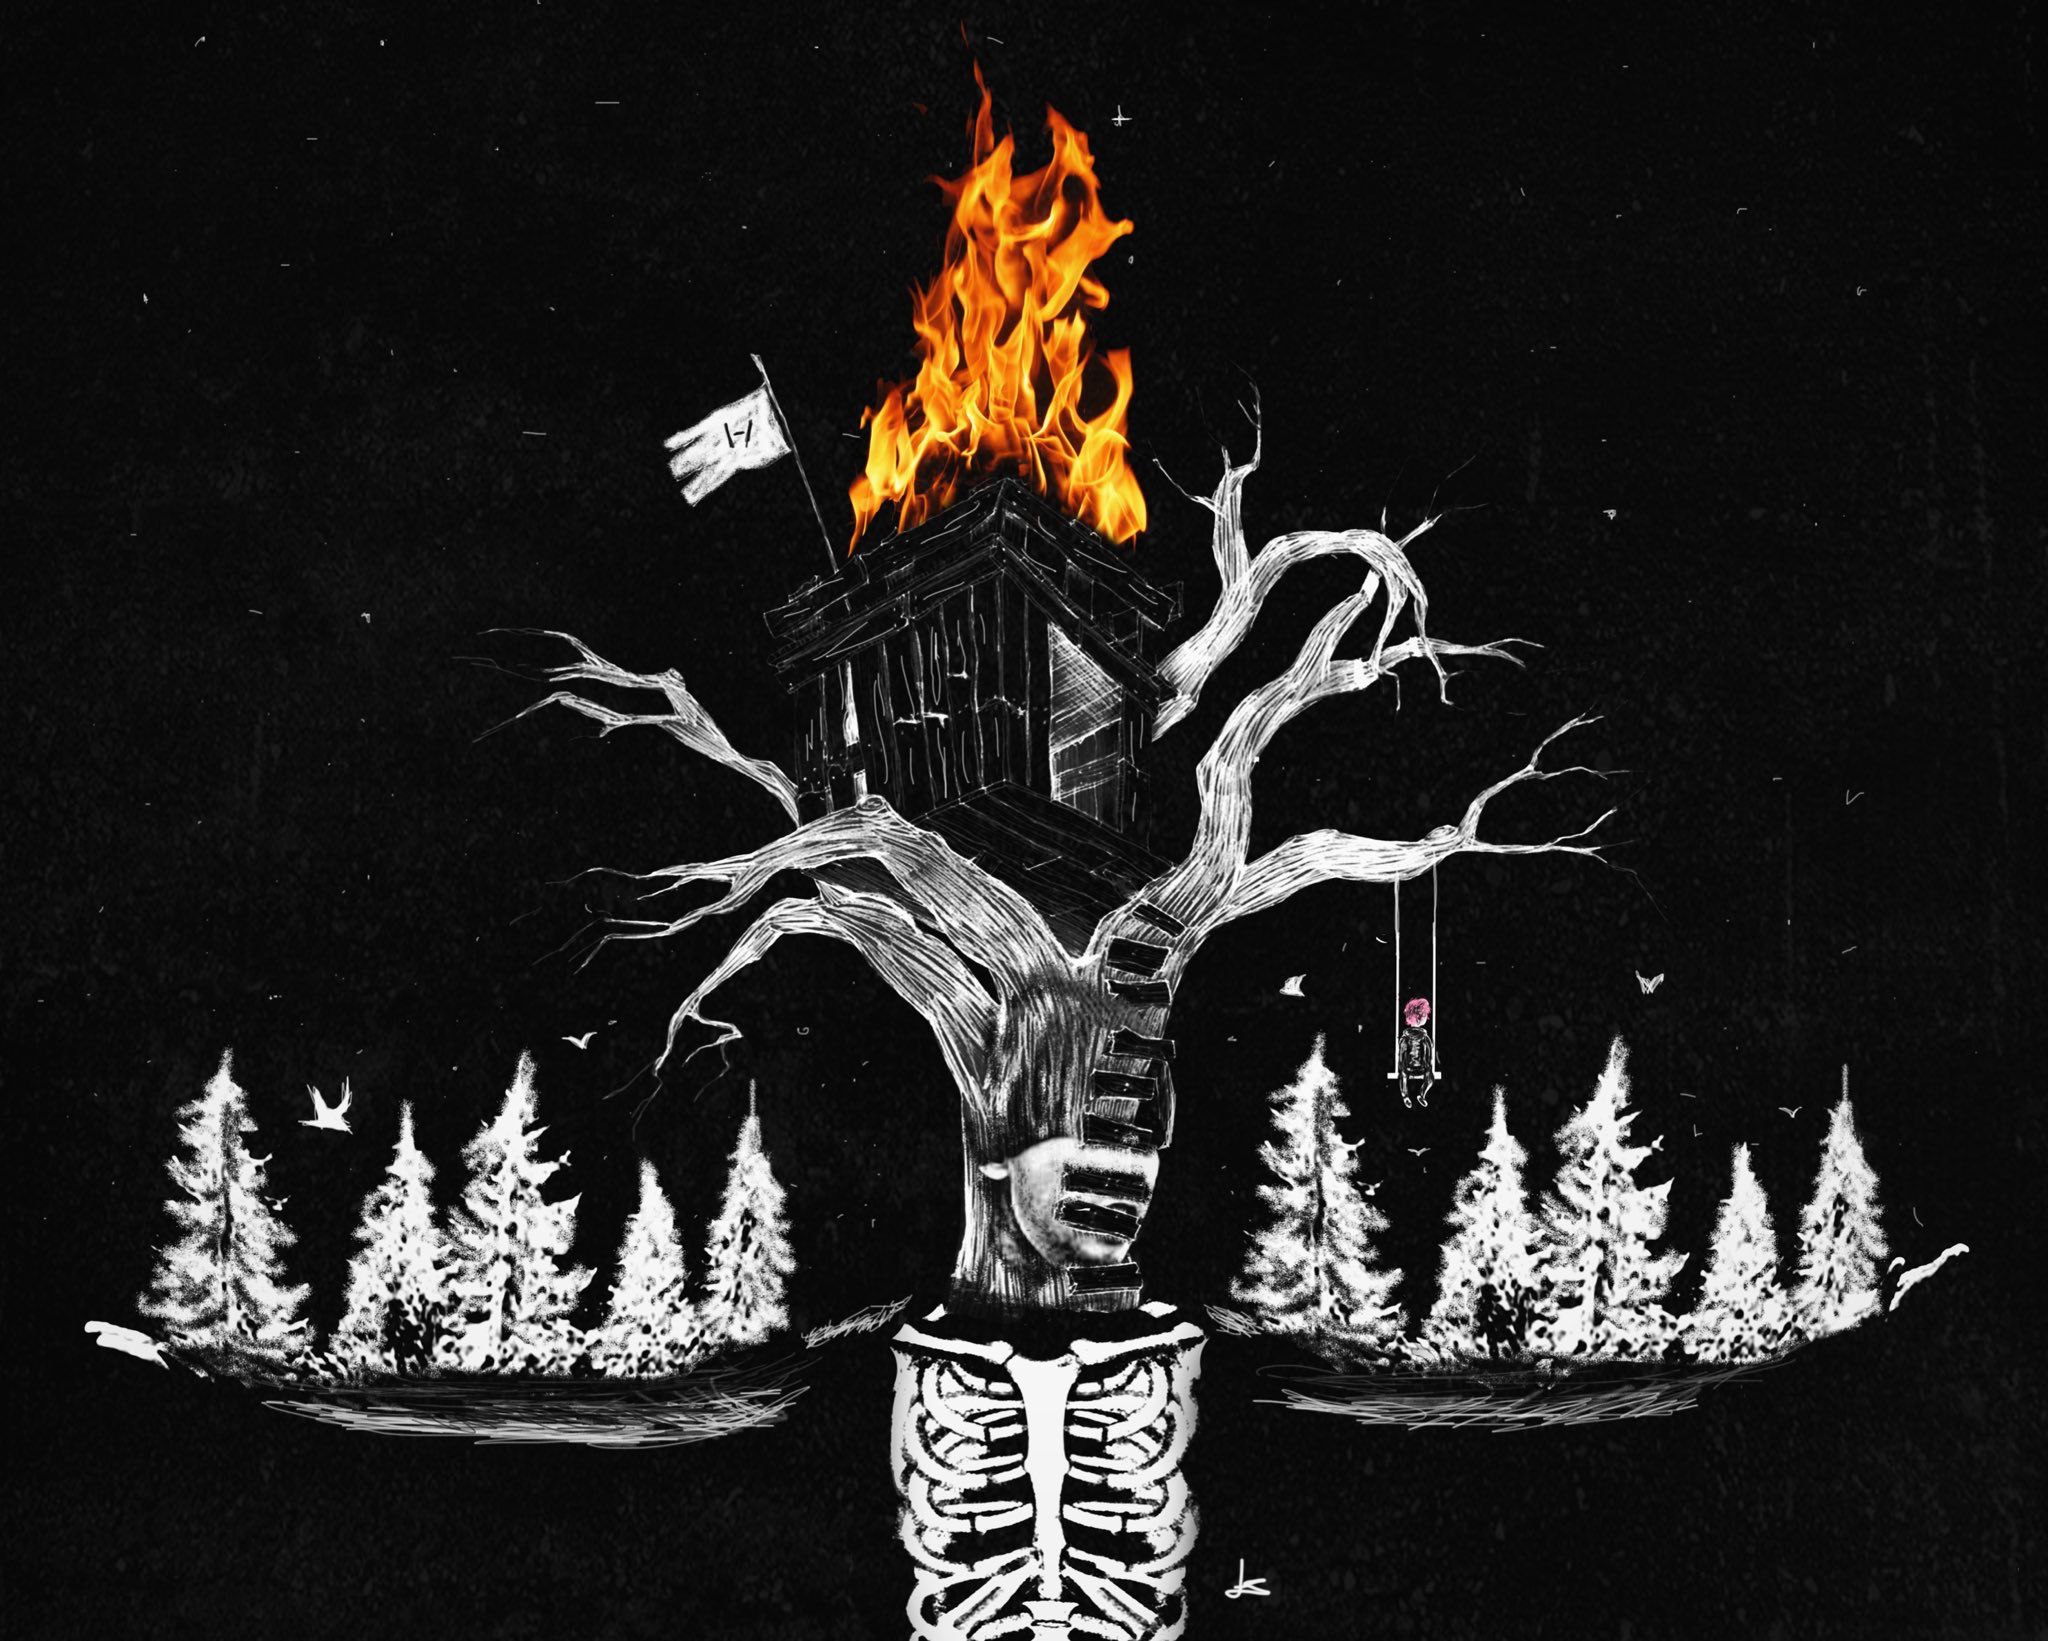 My Treehouse Is On Fire And For Some Reason I Smell Gas On My Hands Twenty One Pilots Art Pilots Art Twenty One Pilots